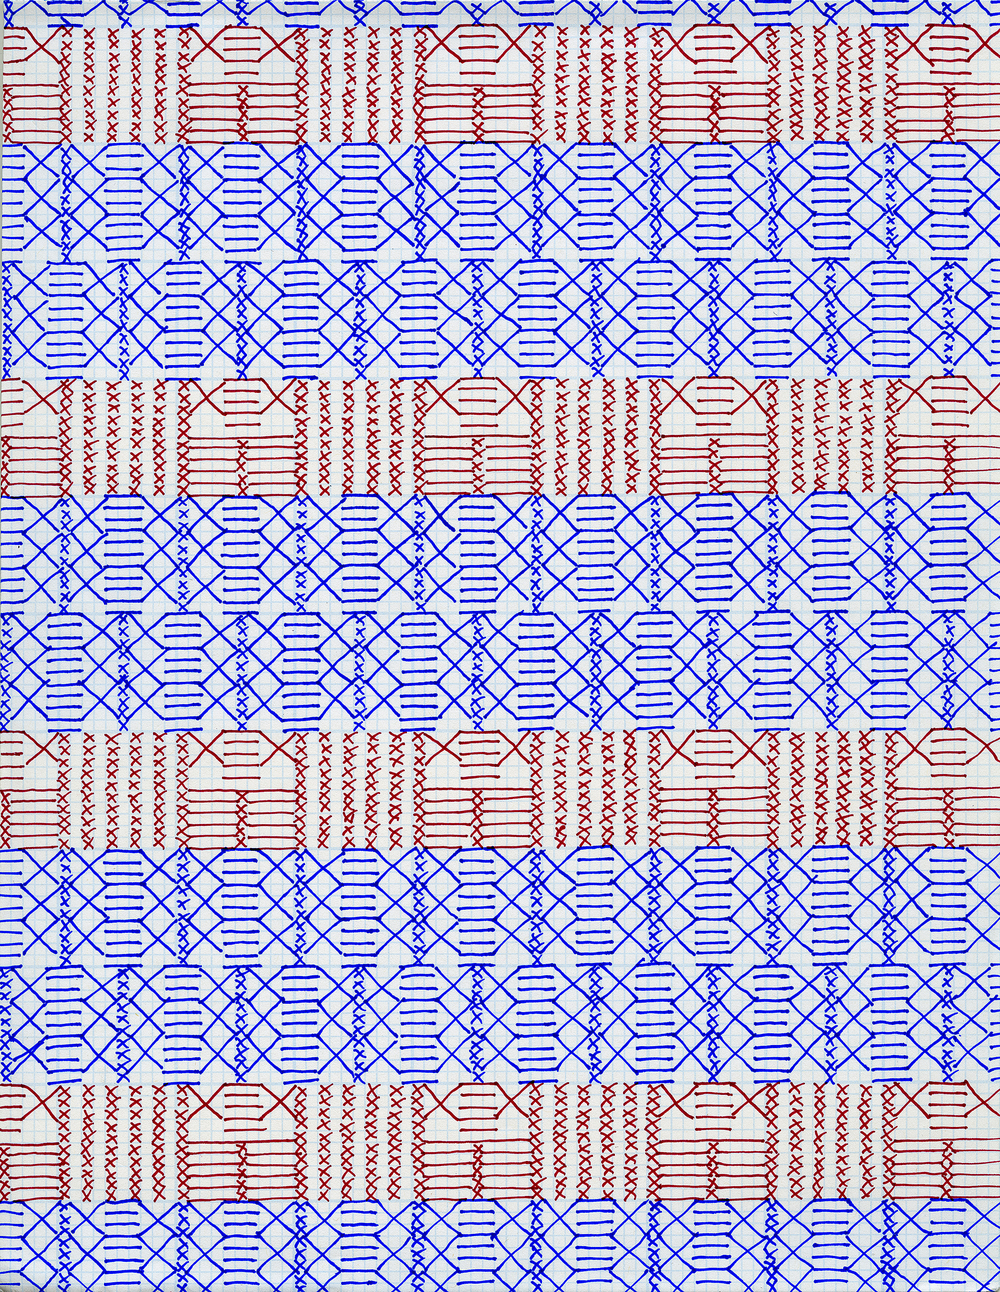 Pen and Ink on Graph Paper, 2016,11 x 8.5 inches